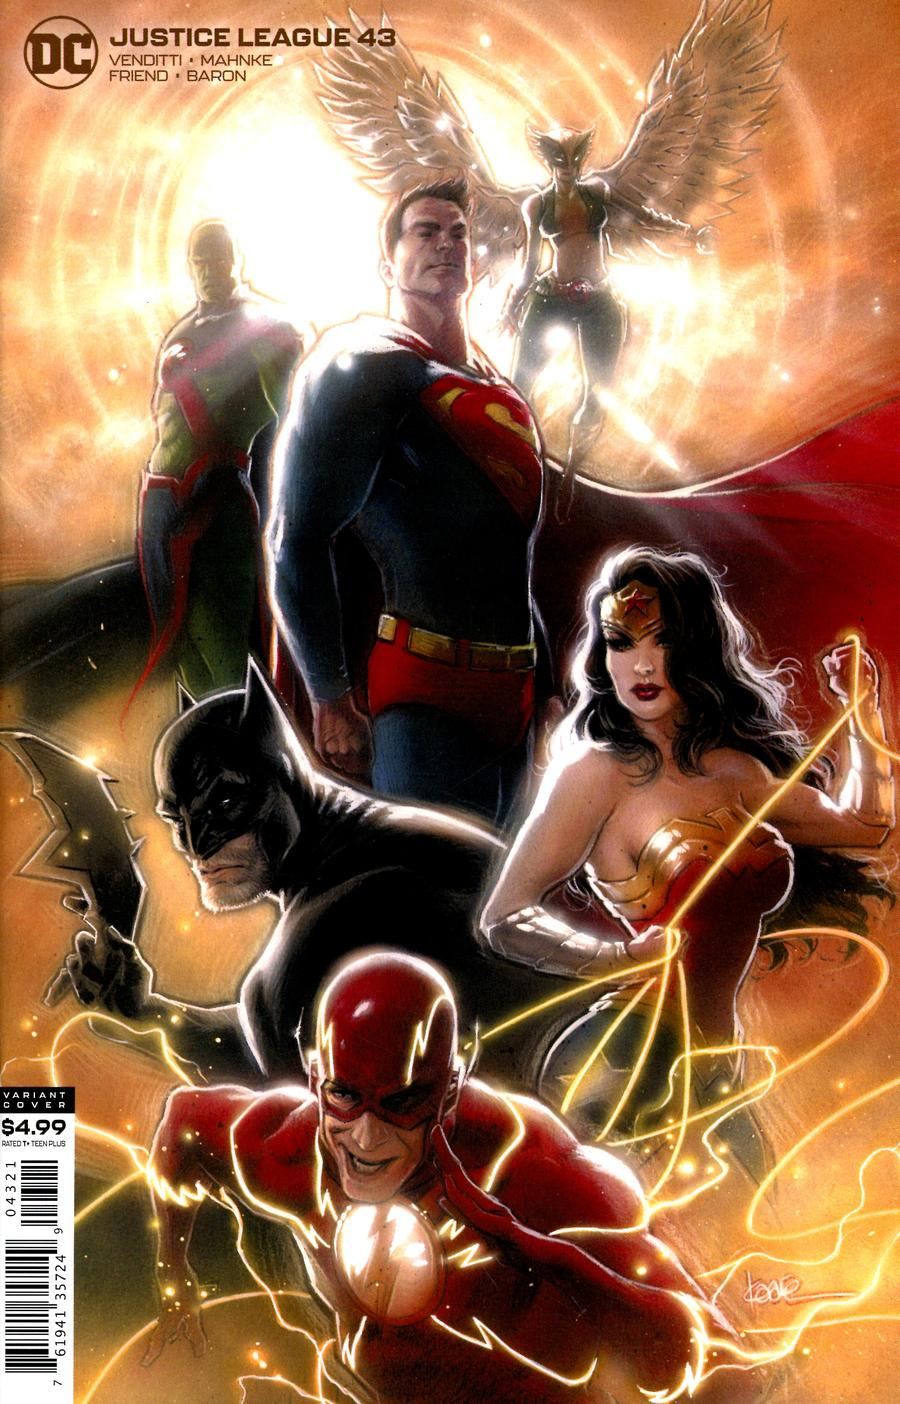 Justice League Vol 4 #43 Cover B Variant Kaare Andrews Card Stock Cover